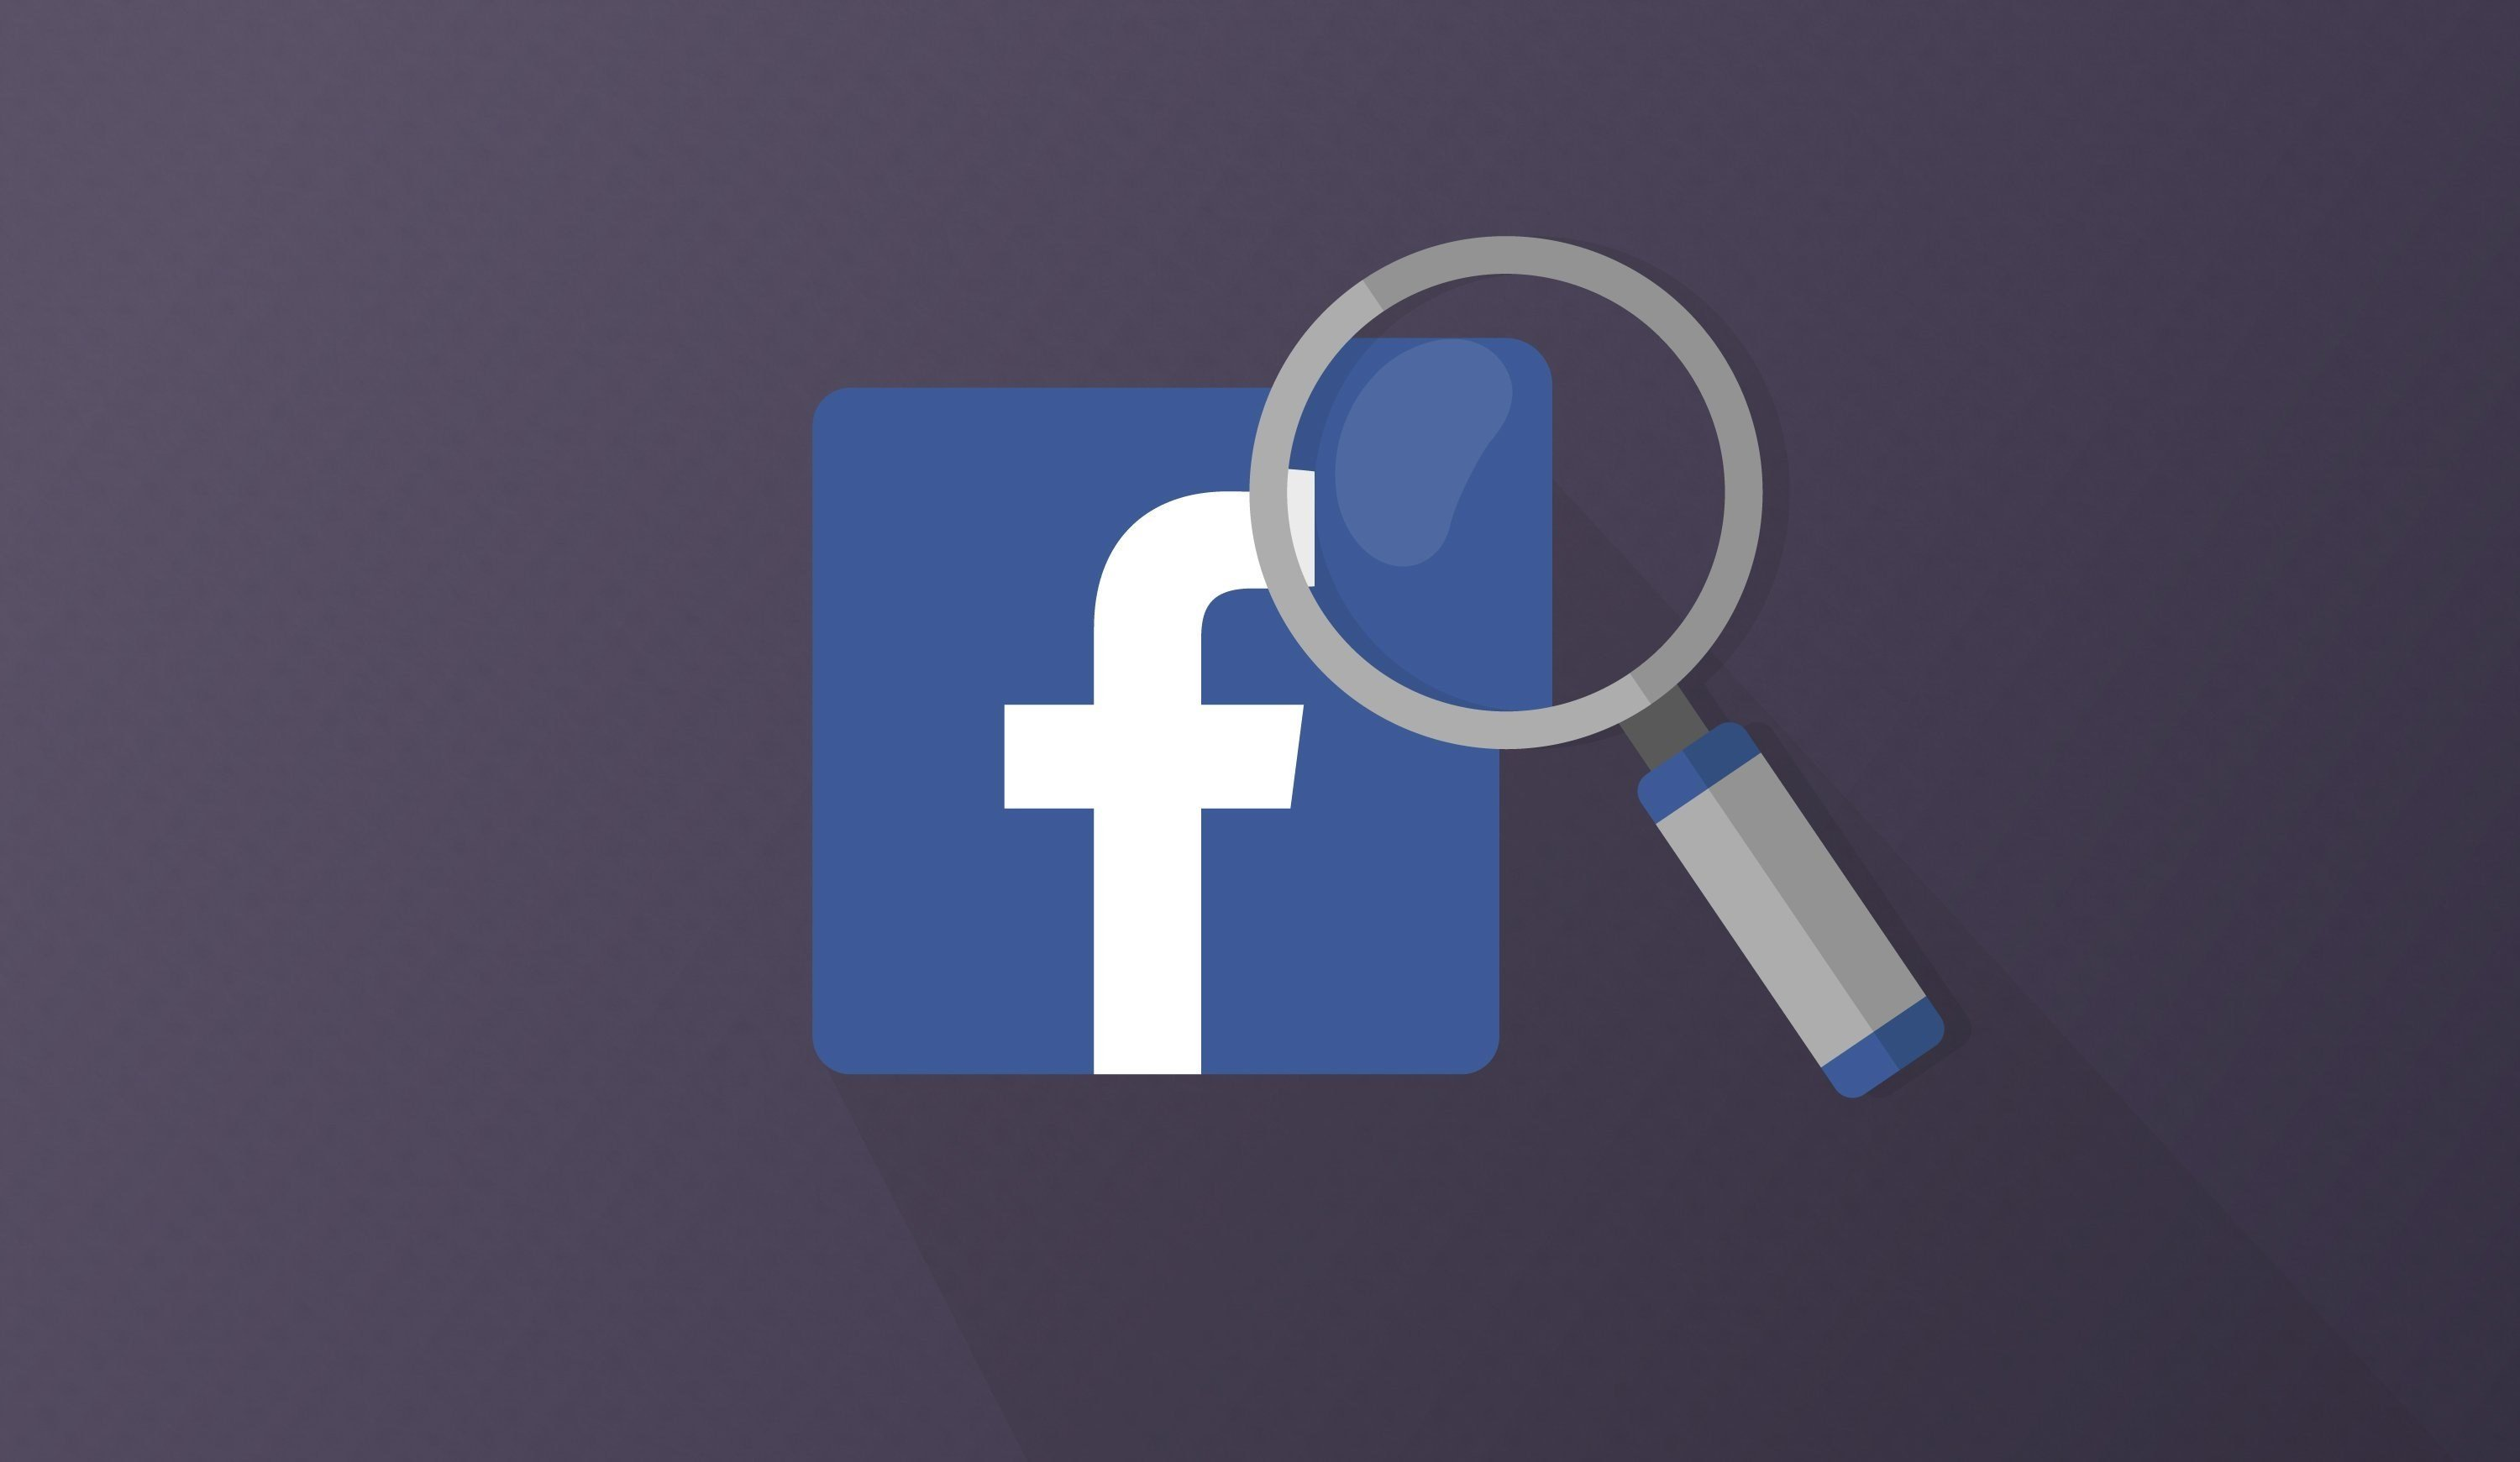 Facebook finds six figures of Russian election-related ad spend